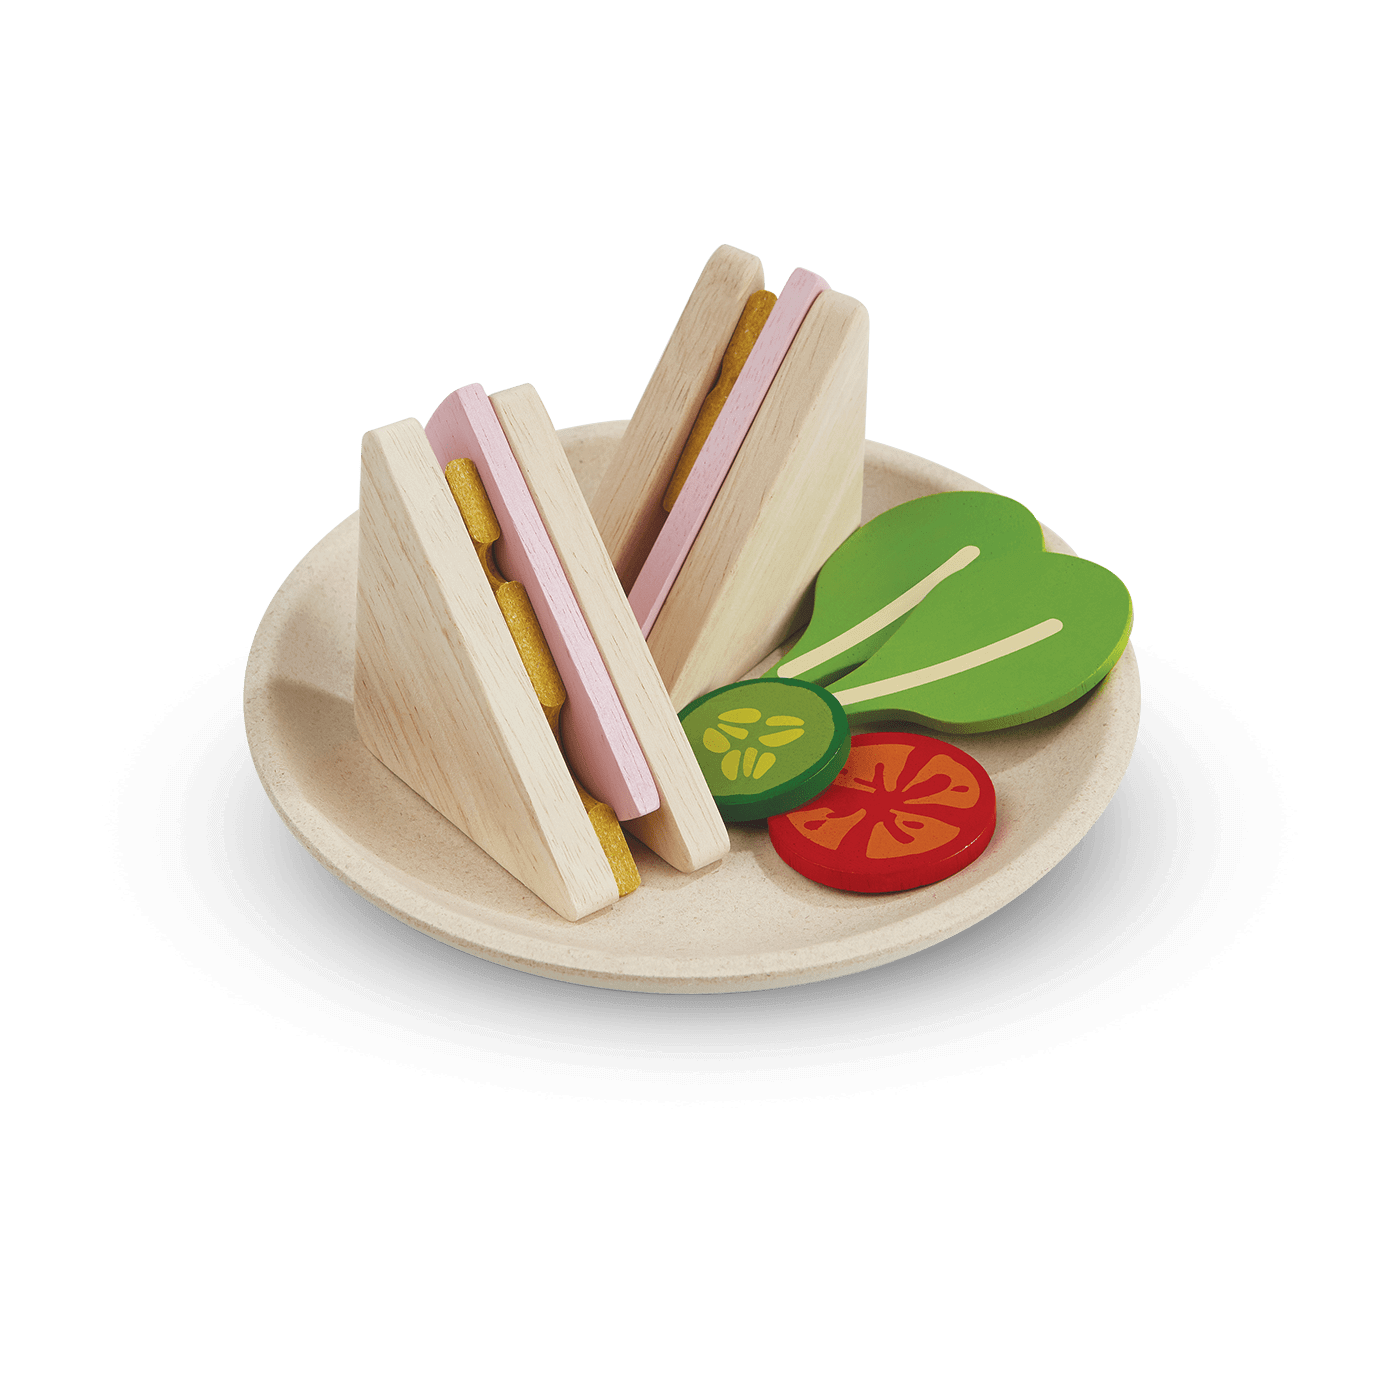 3612_PlanToys_SANDWICH_Pretend_Play_Imagination_Creative_Language_and_Communications_Social_Coordination_Emotion_2yrs_Wooden_toys_Education_toys_Safety_Toys_Non-toxic_0.png